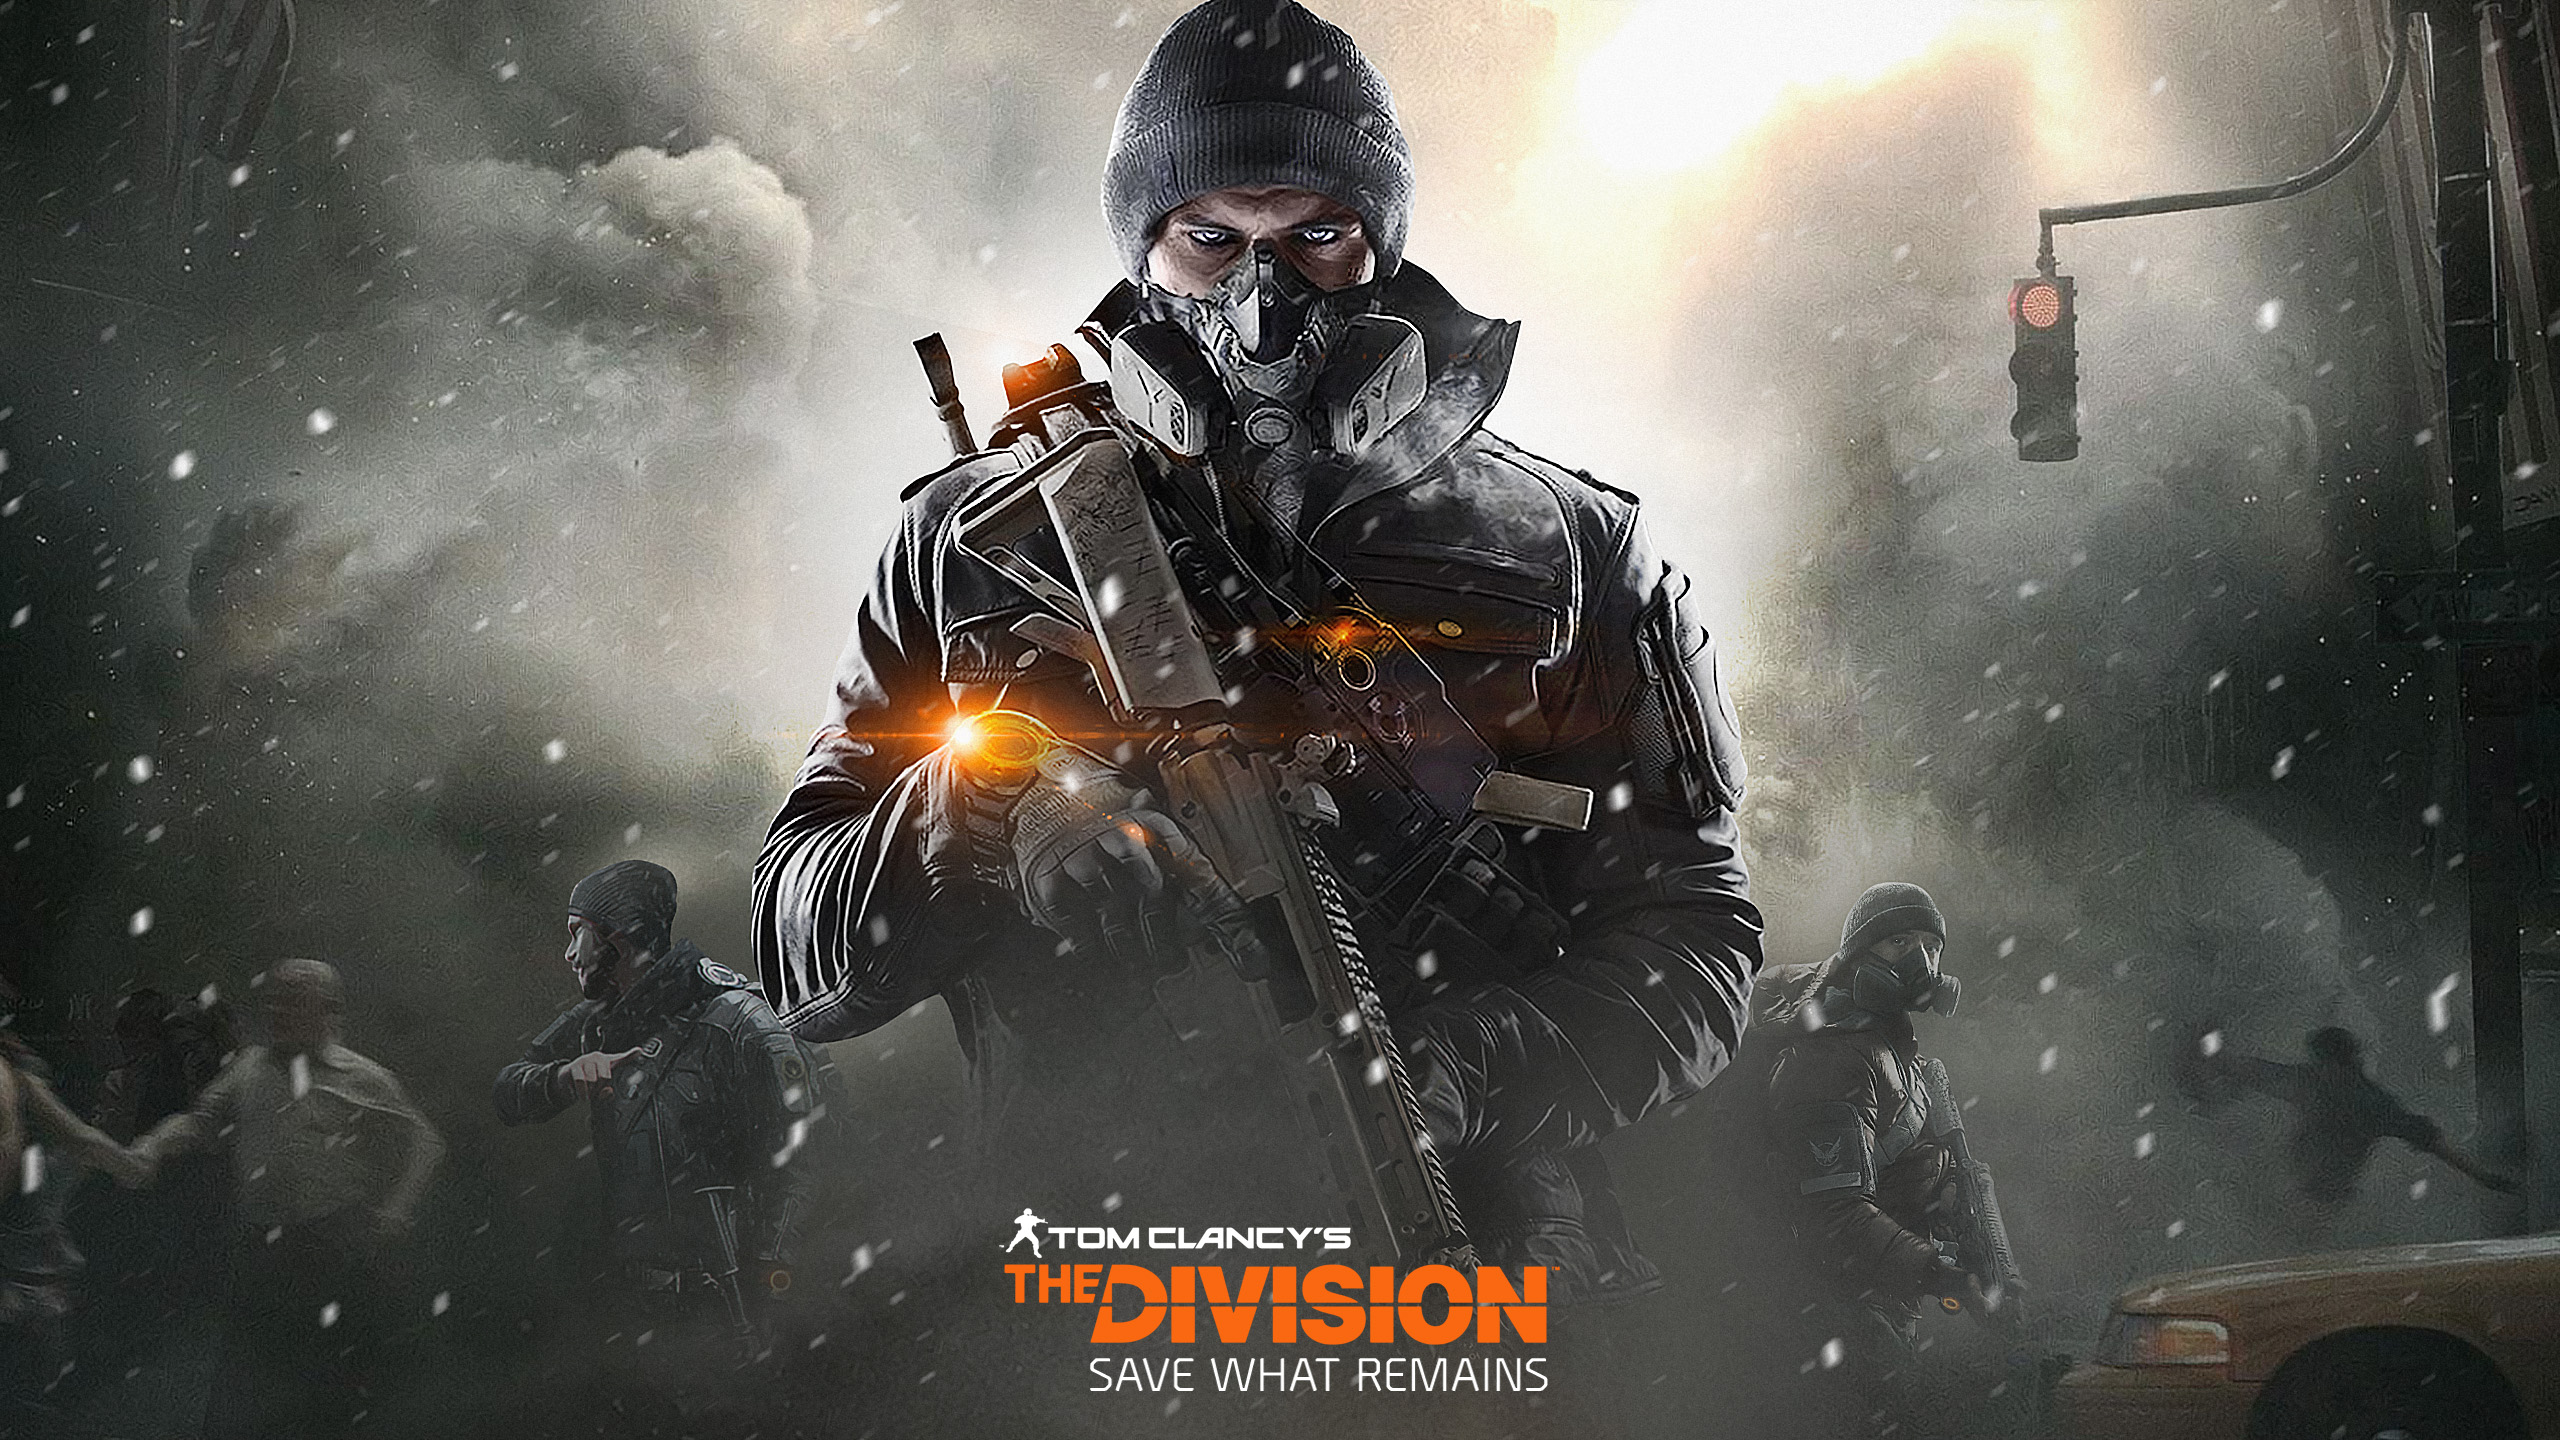 Printables Division the division wallpapers wallpaper 2560x1440